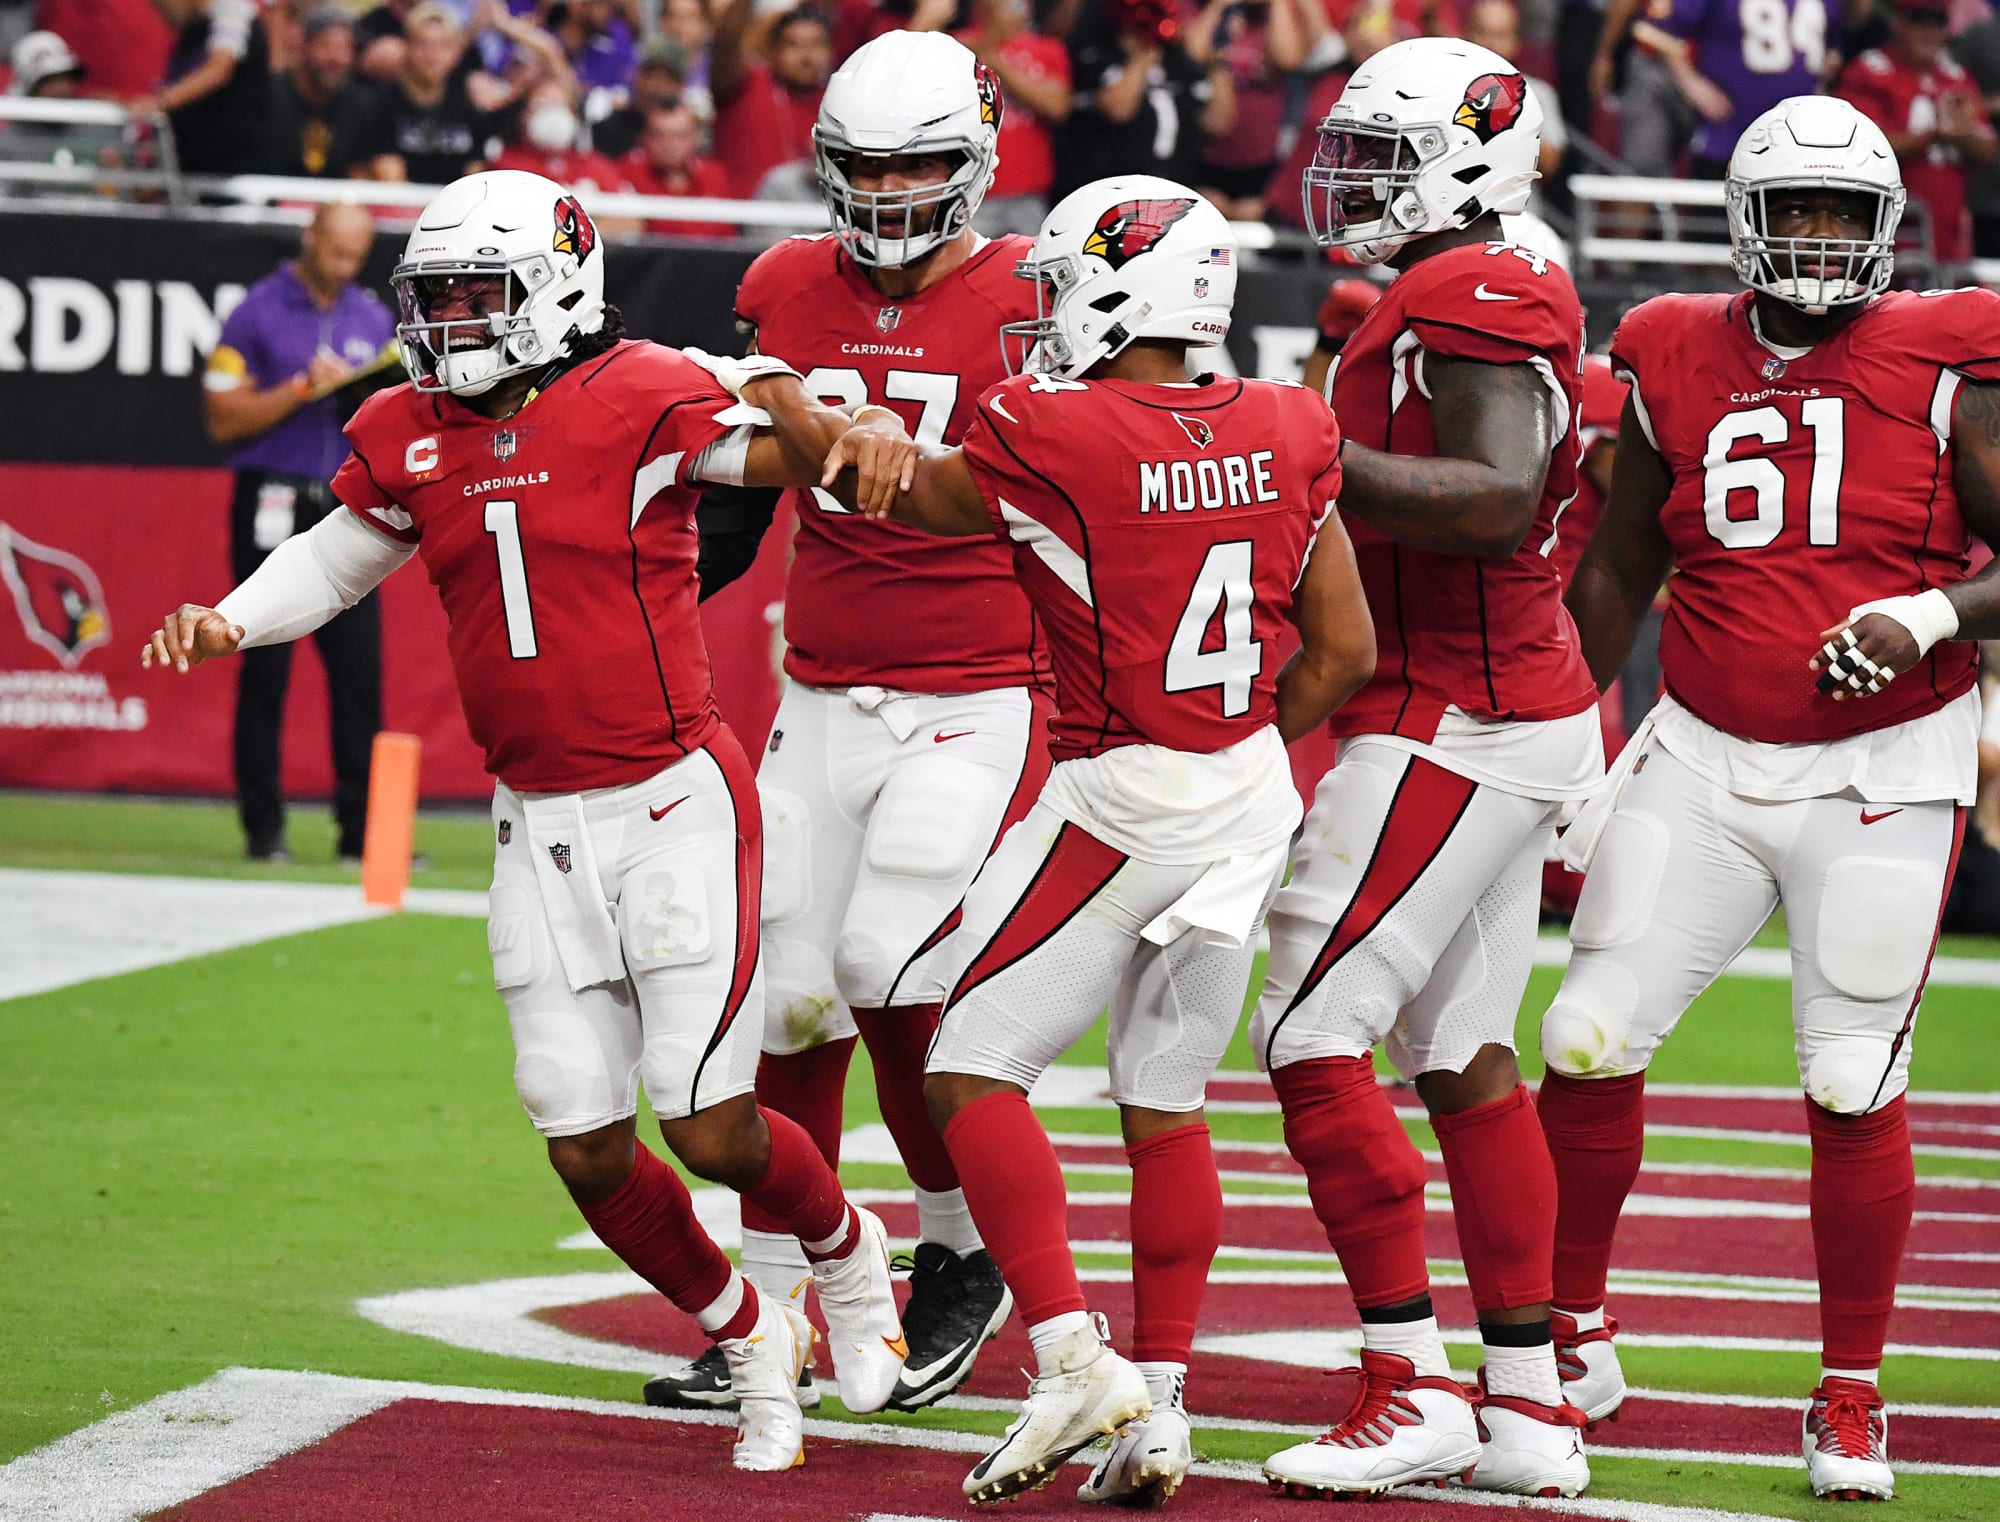 Outstanding plays by Cardinals QB Kyler Murray outweighs his mistakes